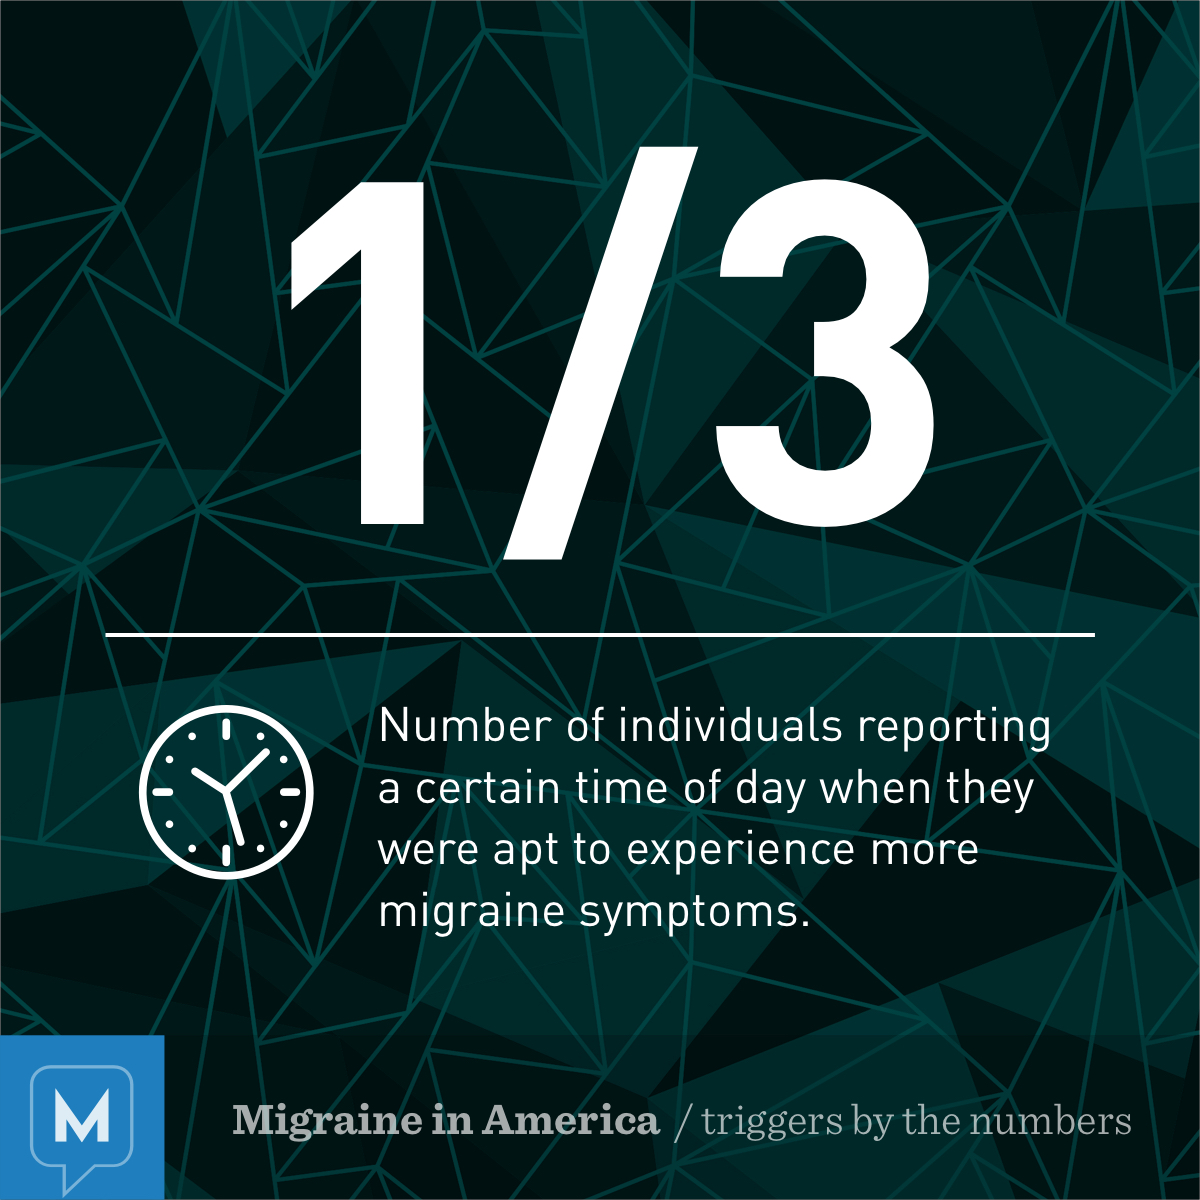 Migraine triggers by the Numbers